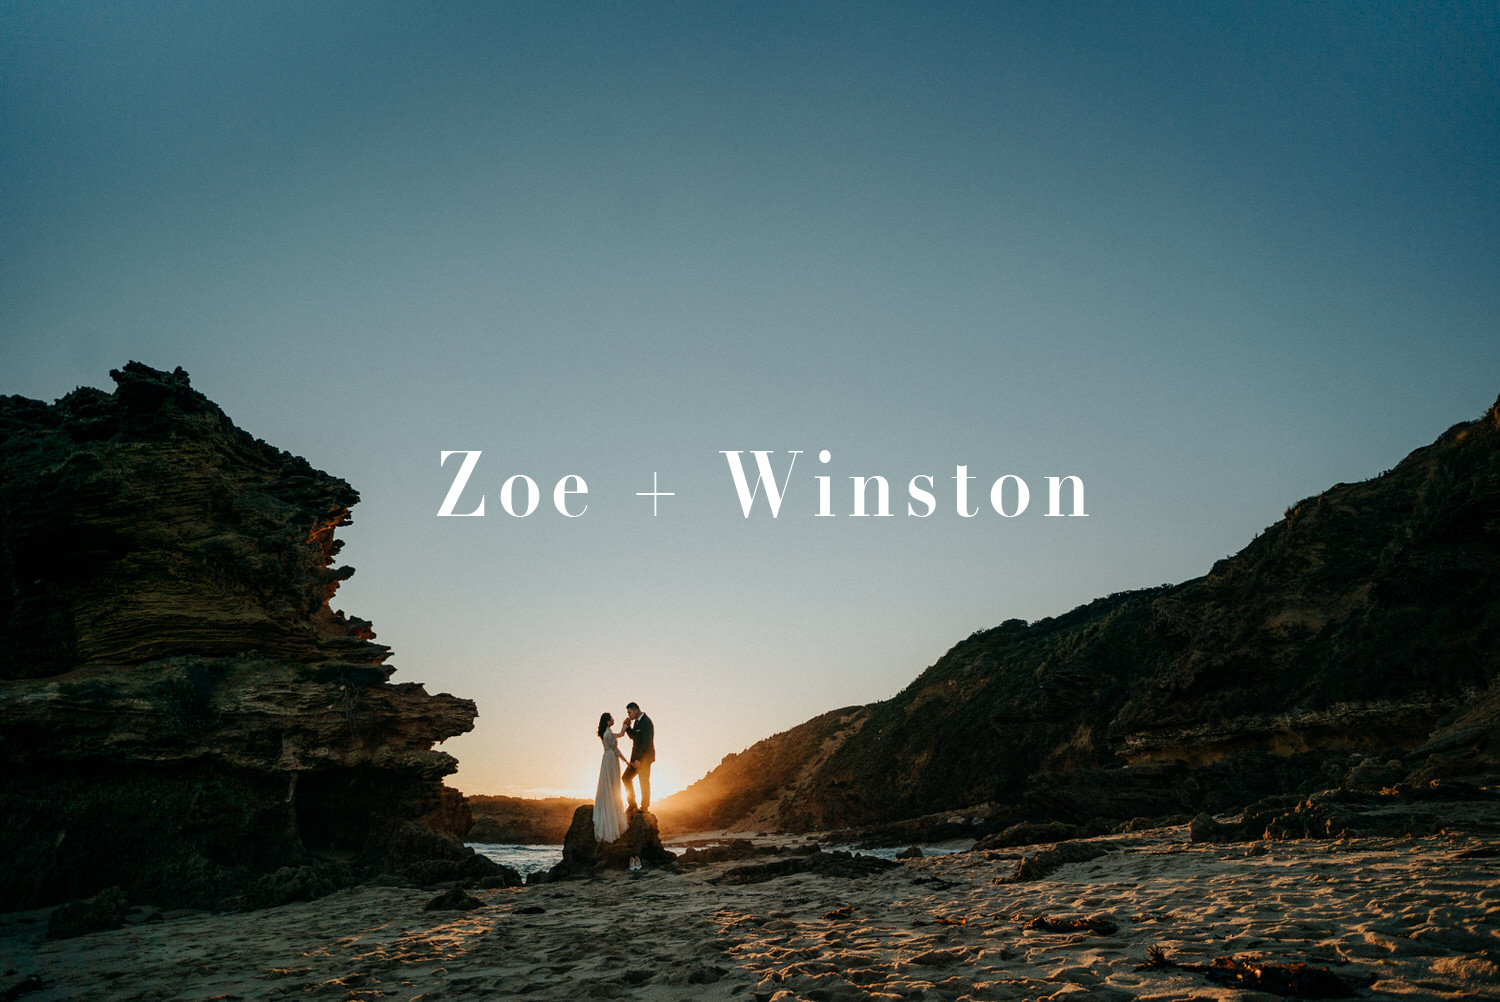 Zoe-Winston-Wedding-Andrew-hardy-cover.jpg